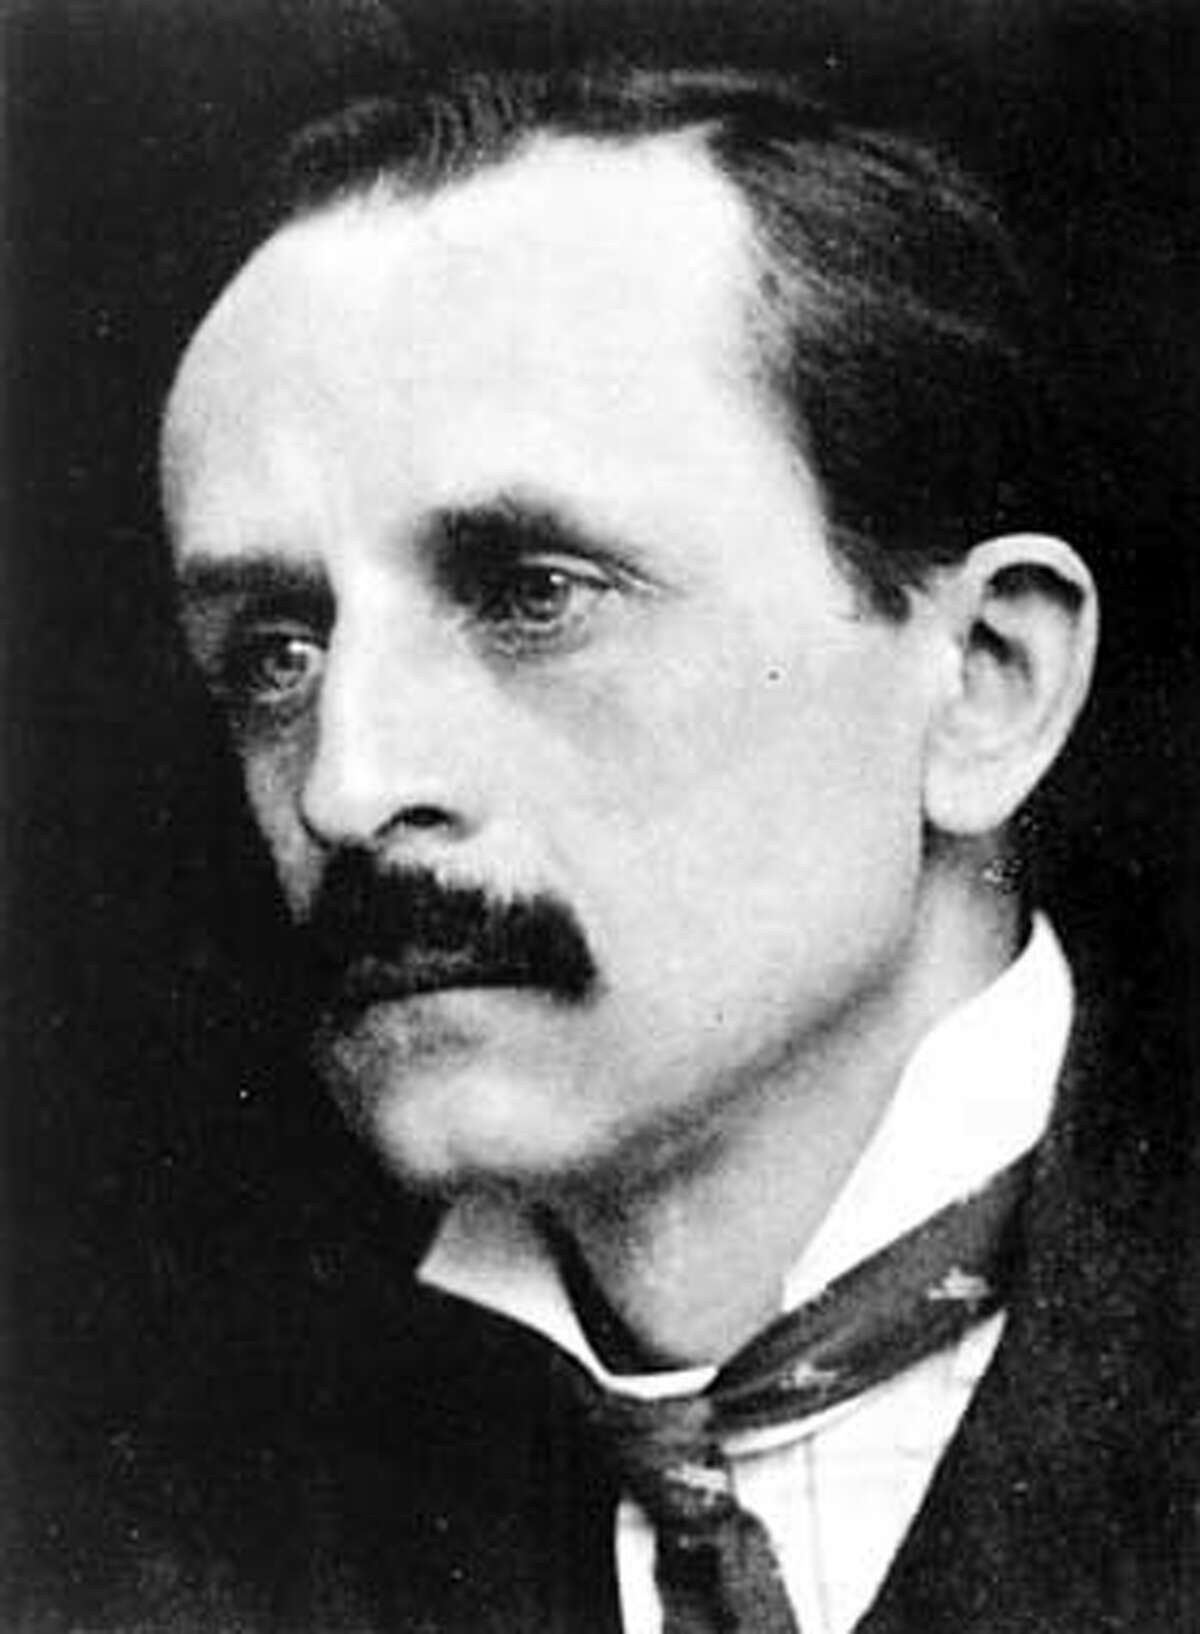 J.M. Barrie. Photograph by G.C. Beresford.